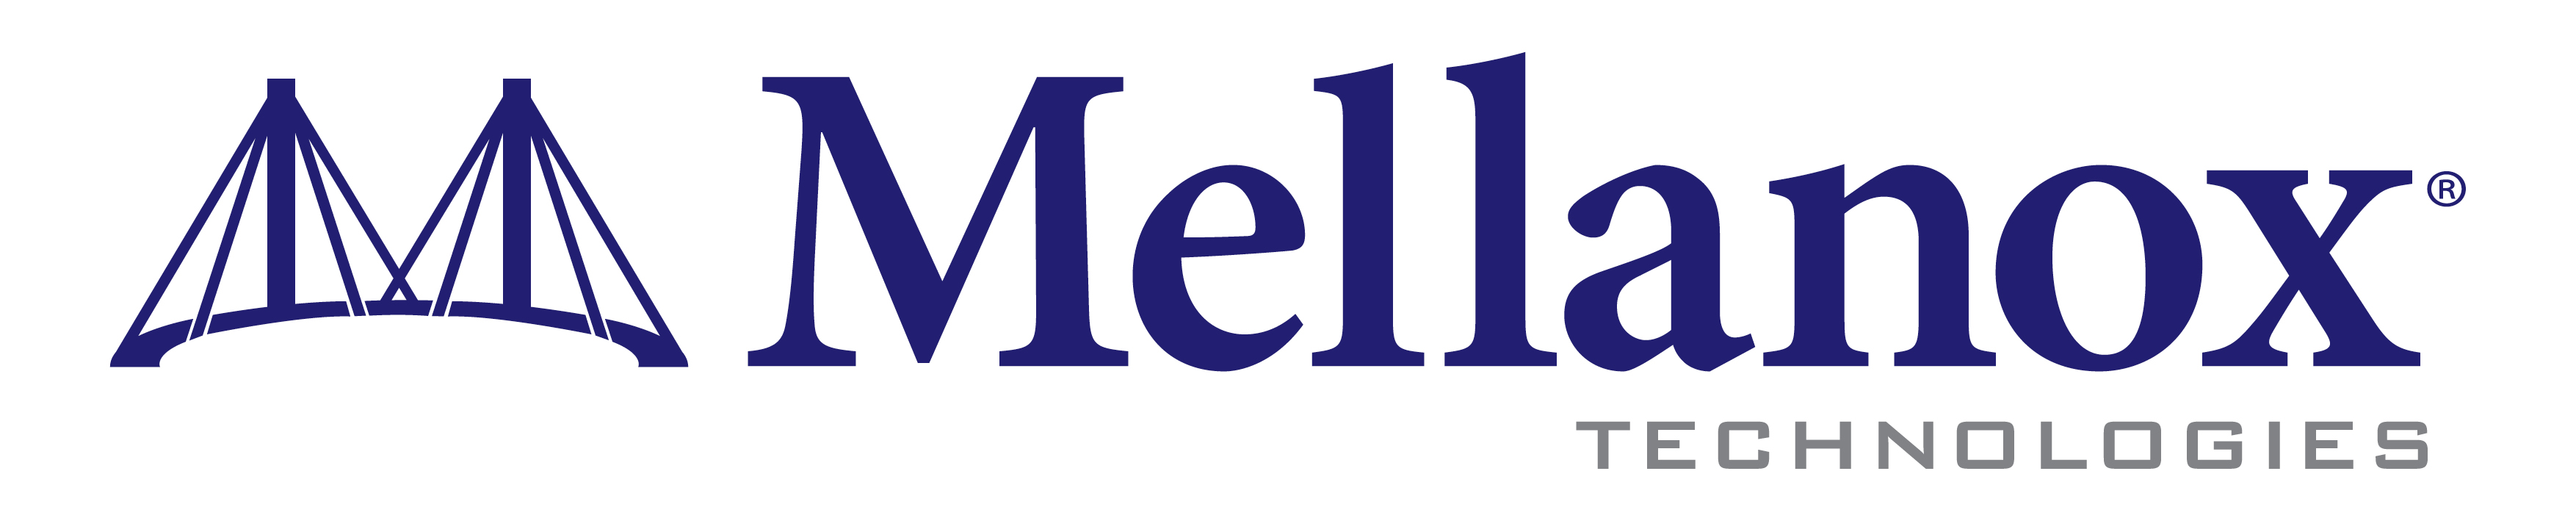 mellanox-logo-horizontal-blue.jpg